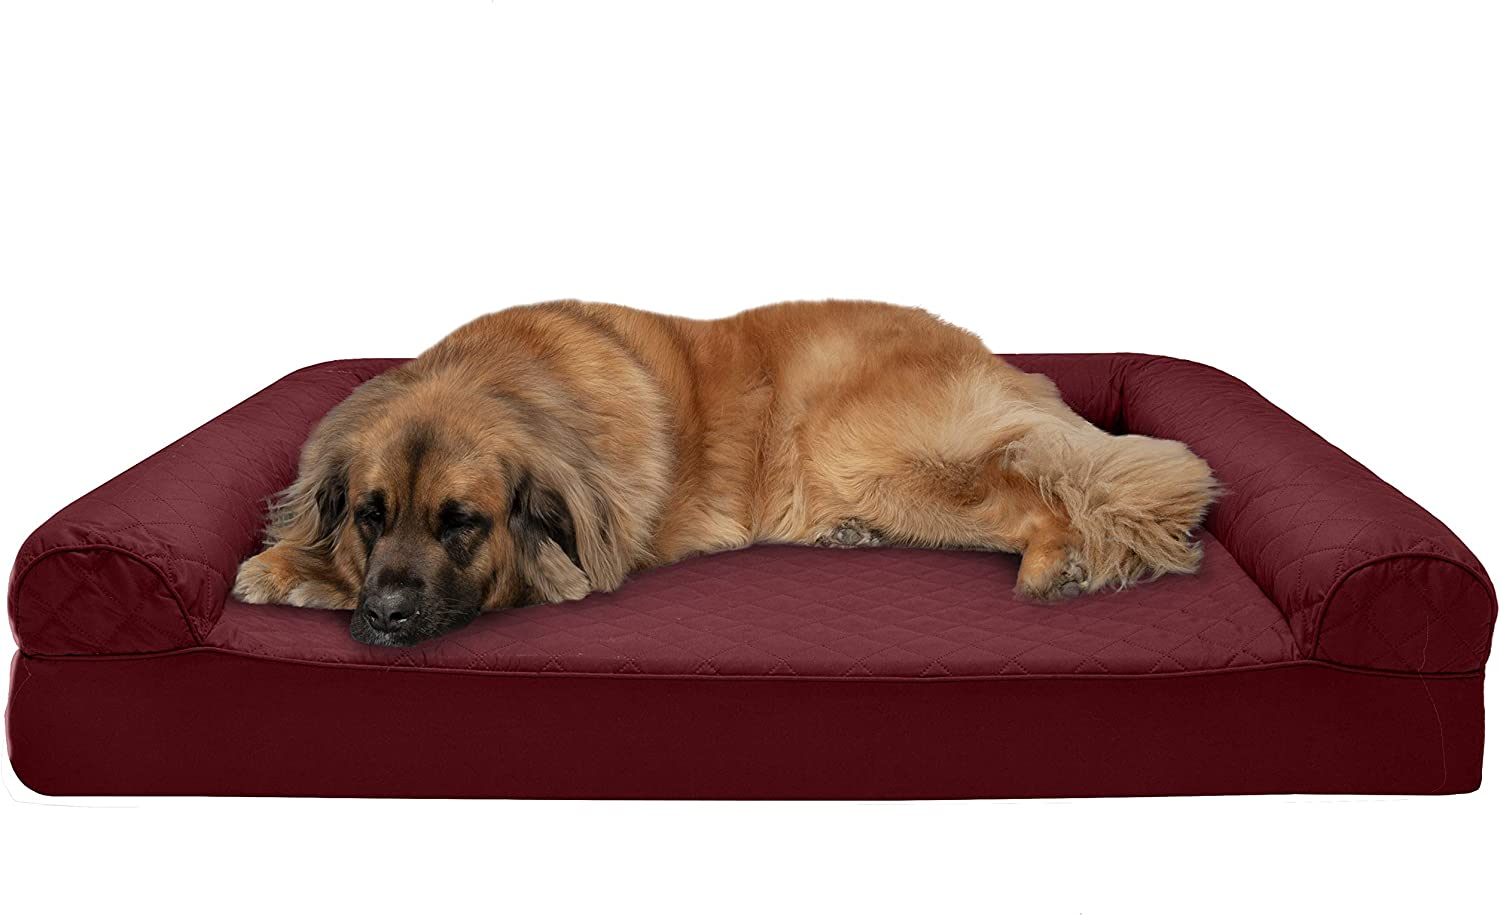 Furhaven - Orthopedic Sofa-Style Traditional Living Room Couch Dog Bed - Available in Multiple Colors & Styles